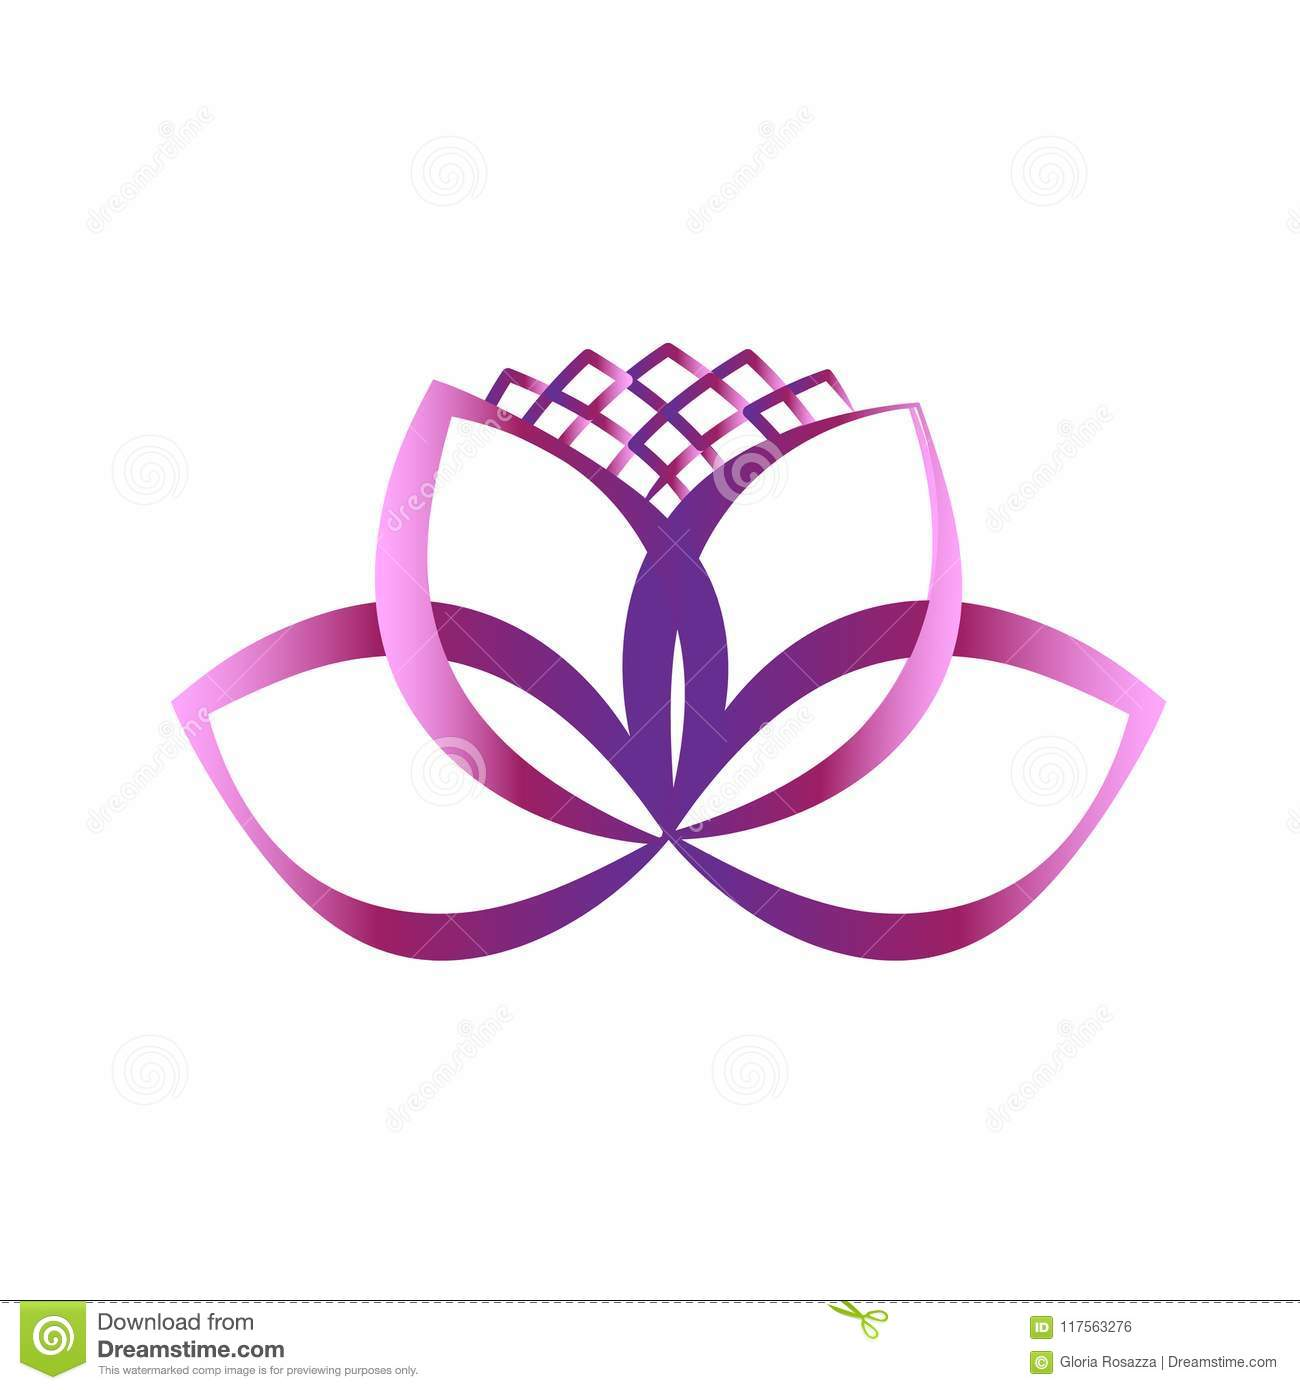 Logo pink lotus flower spa symbol yoga vector image illustration logo pink lotus flower symbol of yoga vector illustration design concept of peace harmony business unity partnerswedding meditation yoga symbol icon izmirmasajfo